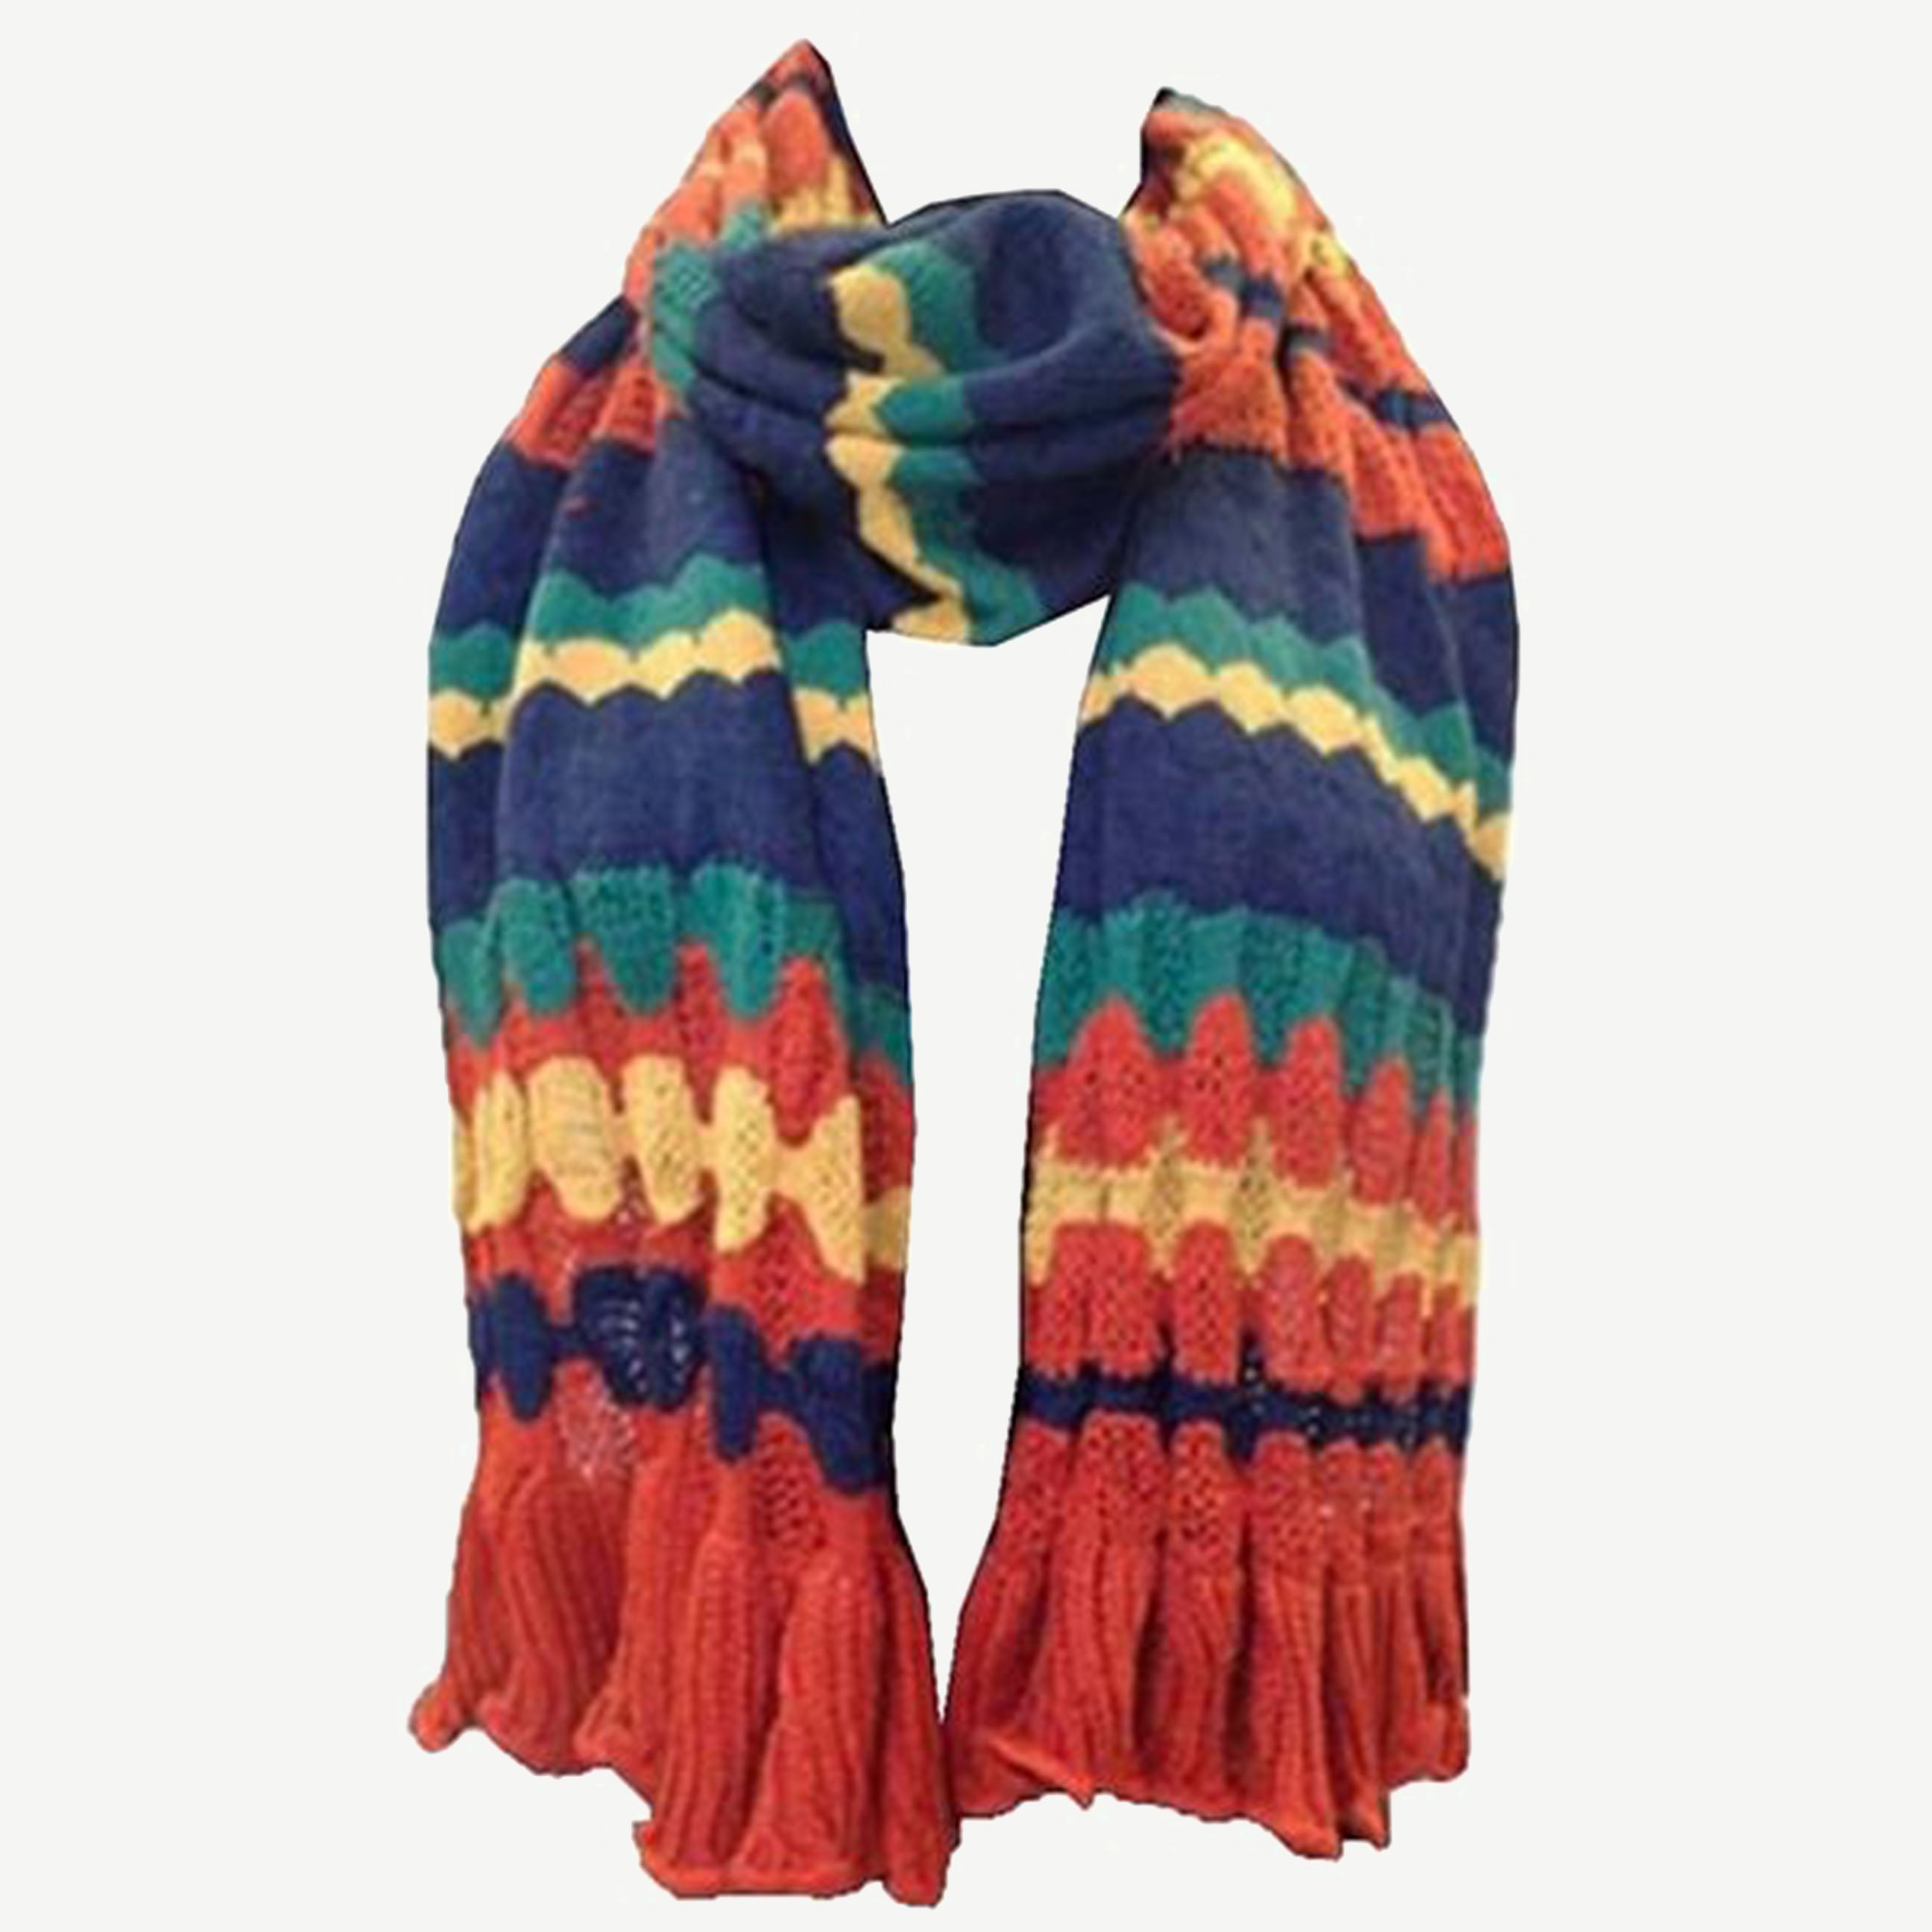 Knitted Waves Trendy Stylish Warm Soft Scarf Stole Multiple Colors